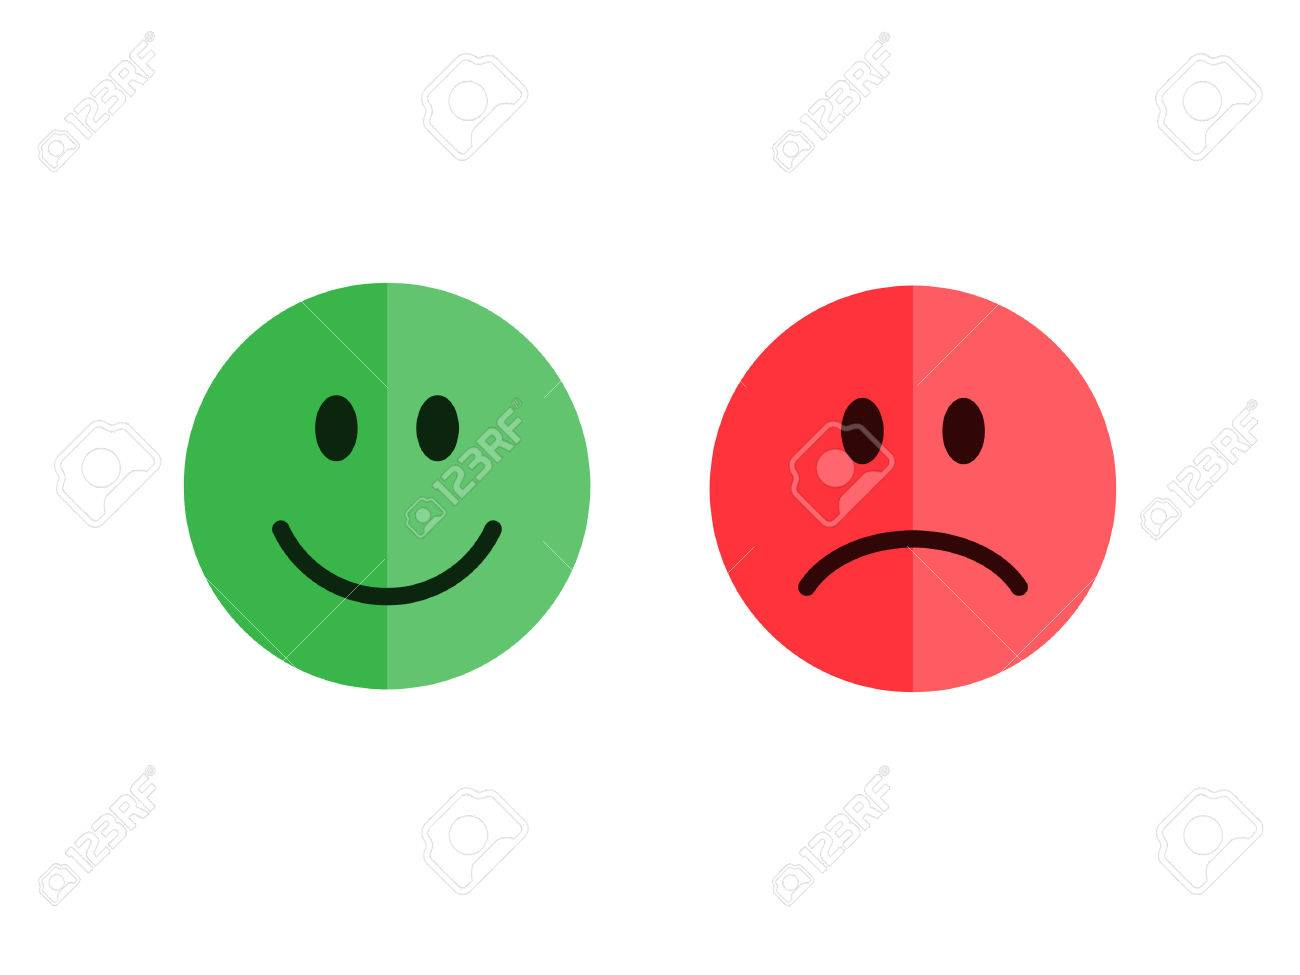 Set of emoticons isolated on a white background. Flat style emoticons. Happy and unhappy smileys. Green and red color. Flat style vector illustration - 55096765